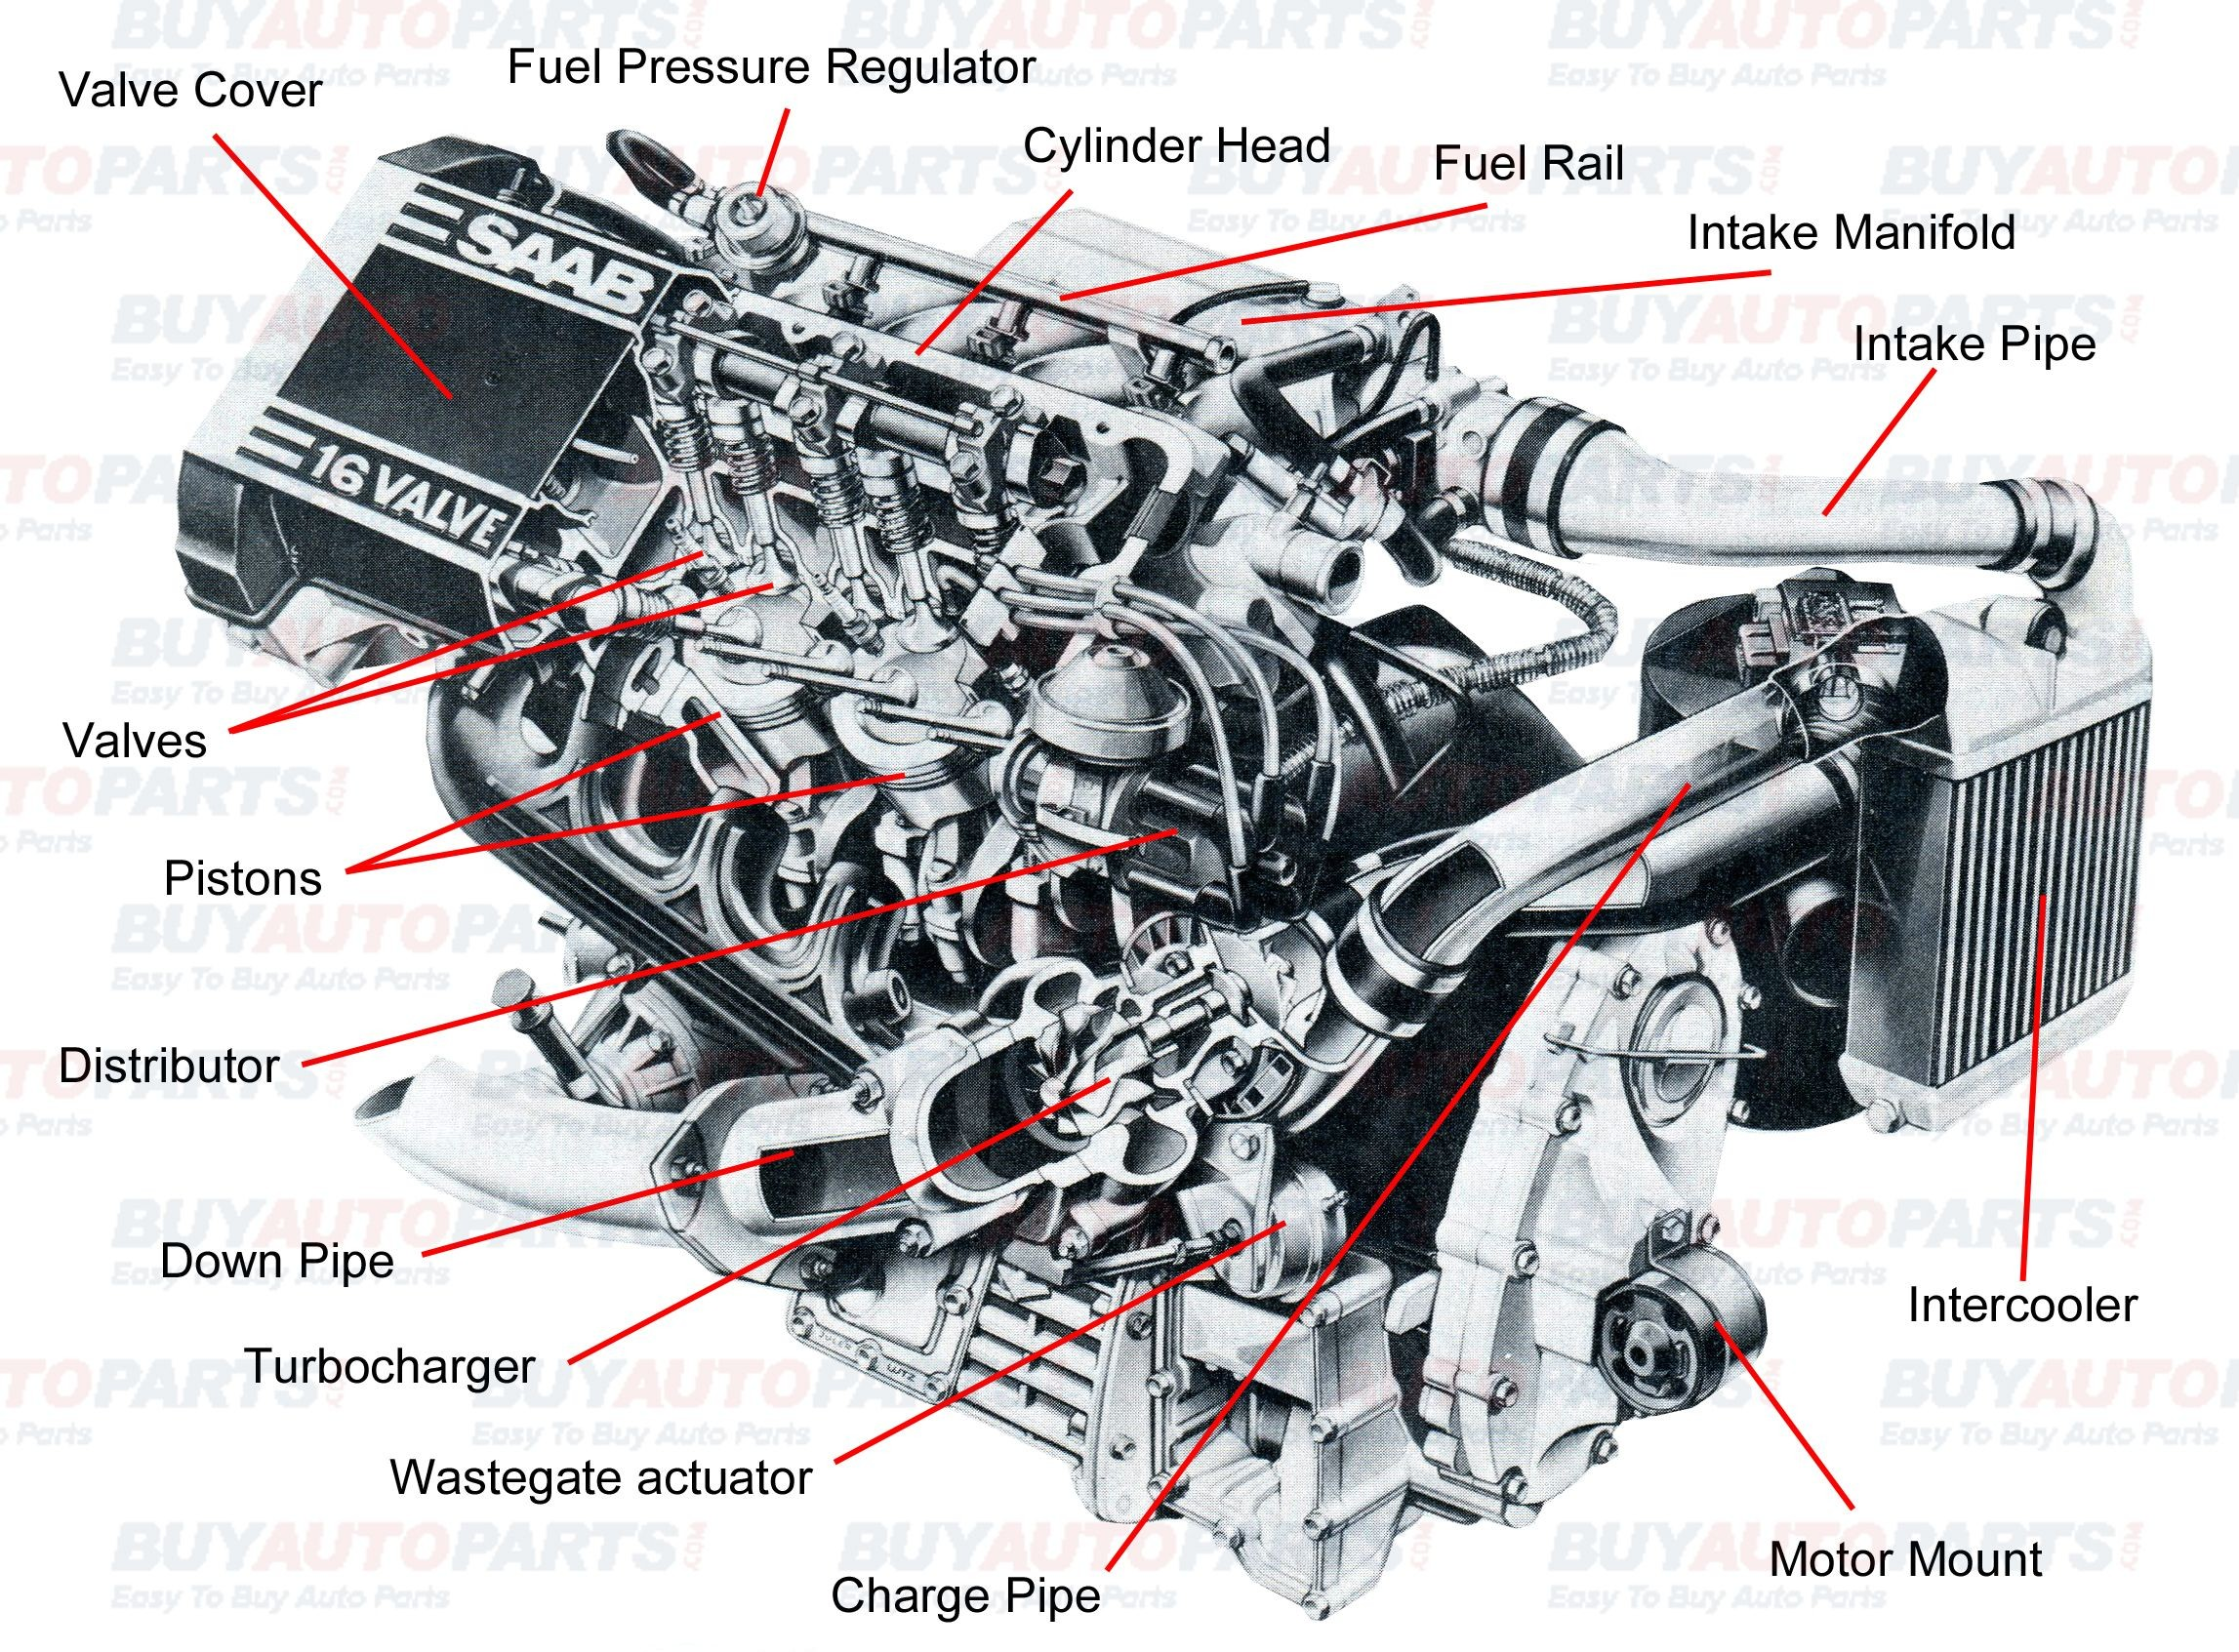 Car Exterior Diagram Pin by Jimmiejanet Testellamwfz On What Does An Engine with Turbo Of Car Exterior Diagram